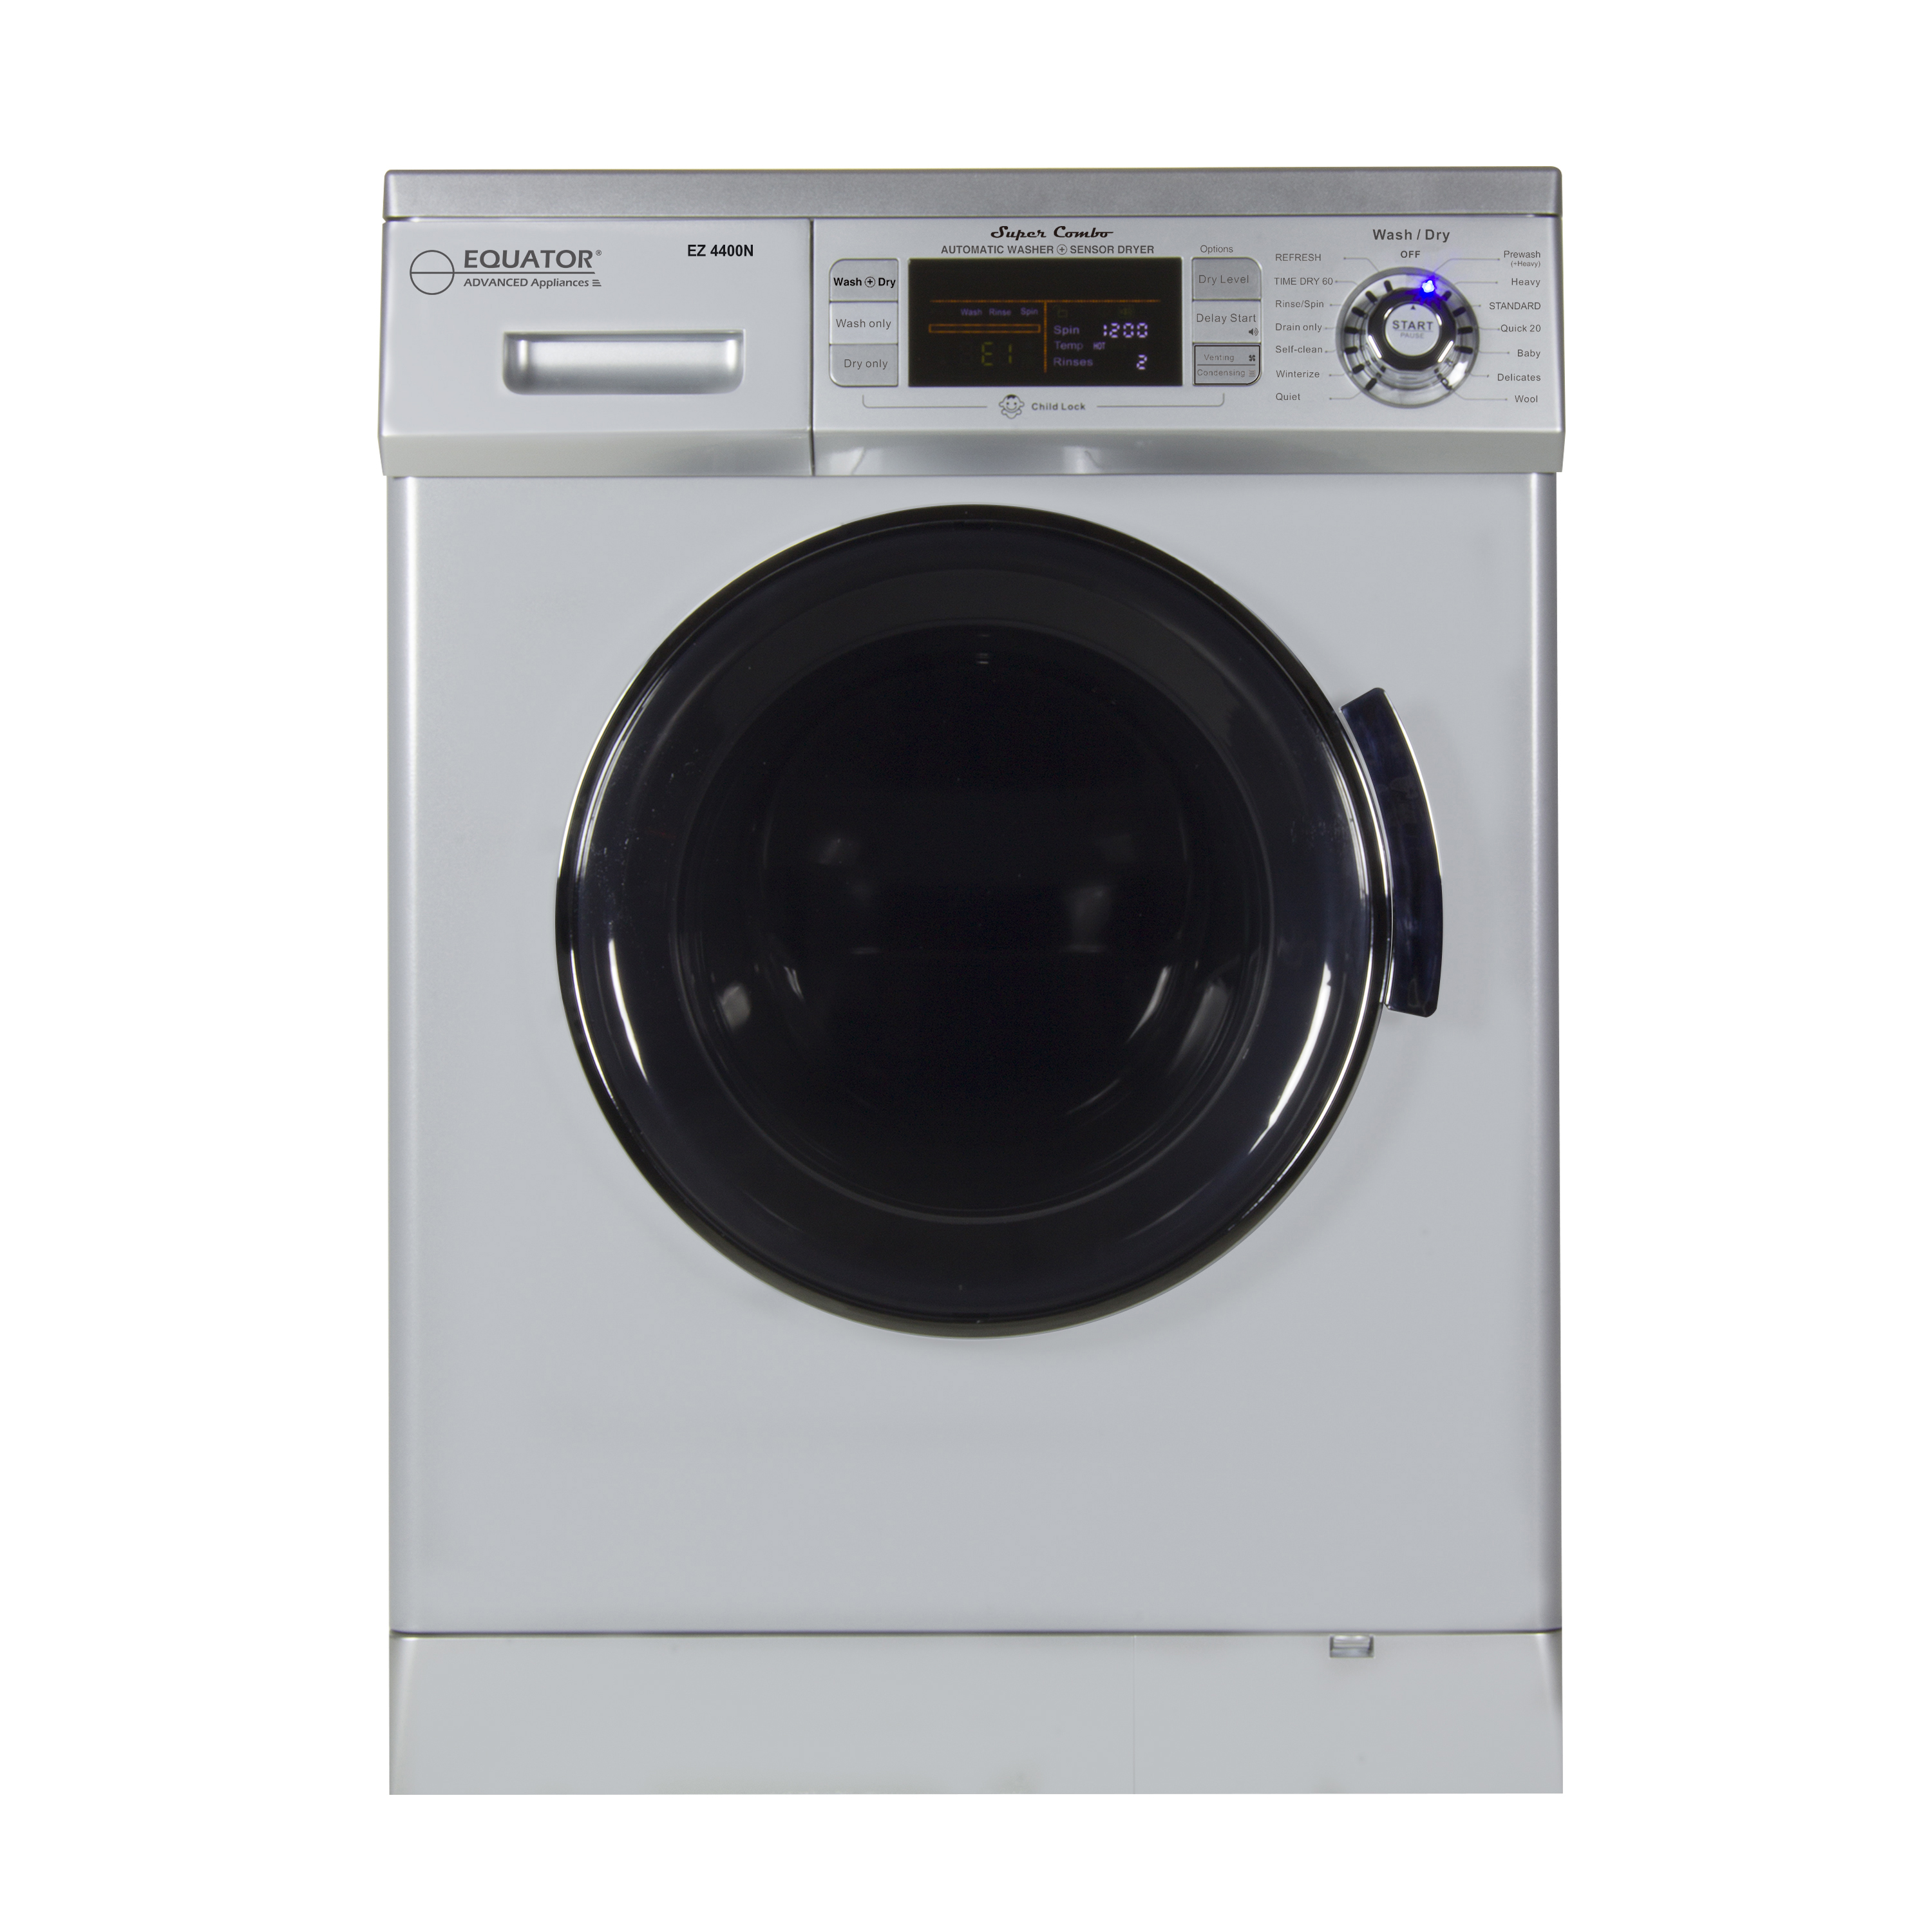 All-in-one 1200 RPM New 2019 Version Compact Convertible Combo Washer Dryer with Fully Digital Control Panel in Silver